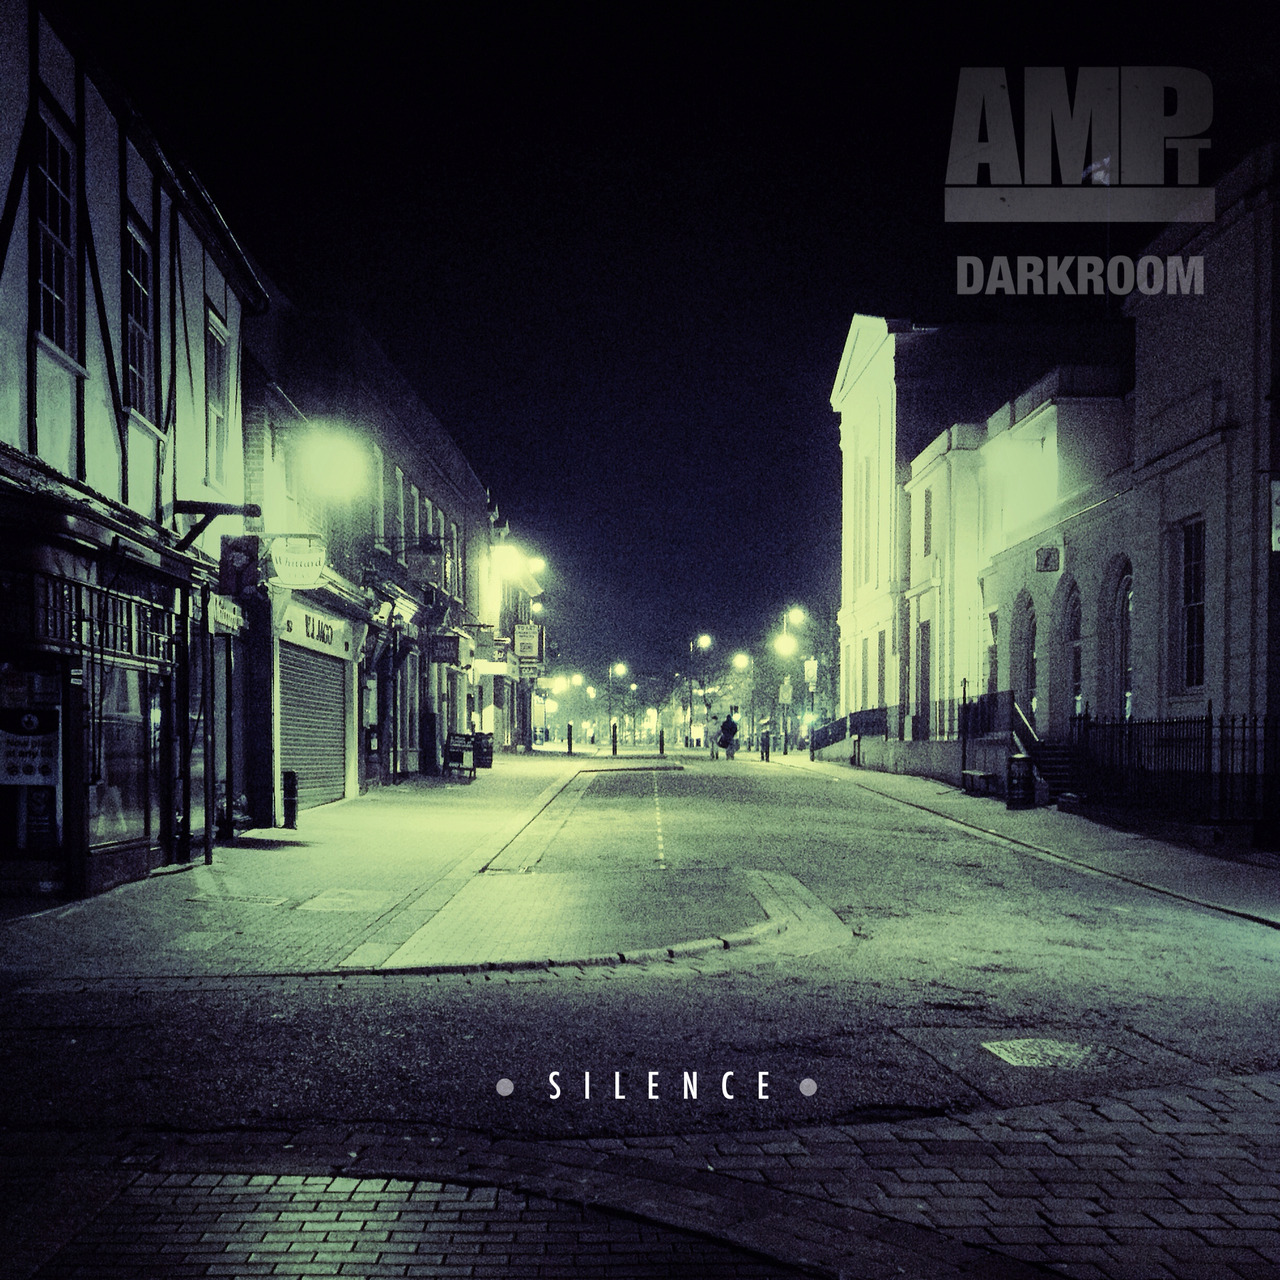 AMPt Darkroom - Tips for Capturing Stunning Night ShotsWhile some people put their cameras away when the sun goes down…others are just getting started. In this Darkroom lesson we explore the fascinating area of night time shooting. Darren Hudson walks us through what it takes to capture stunning images at night using just your mobile device.Go check out the FULL TUTORIAL where Darren breaks down his shooting and editing techniques for low-light images.Check back for new Darkroom mobile photography lessons every Monday & Tuesday @ ampteam.org